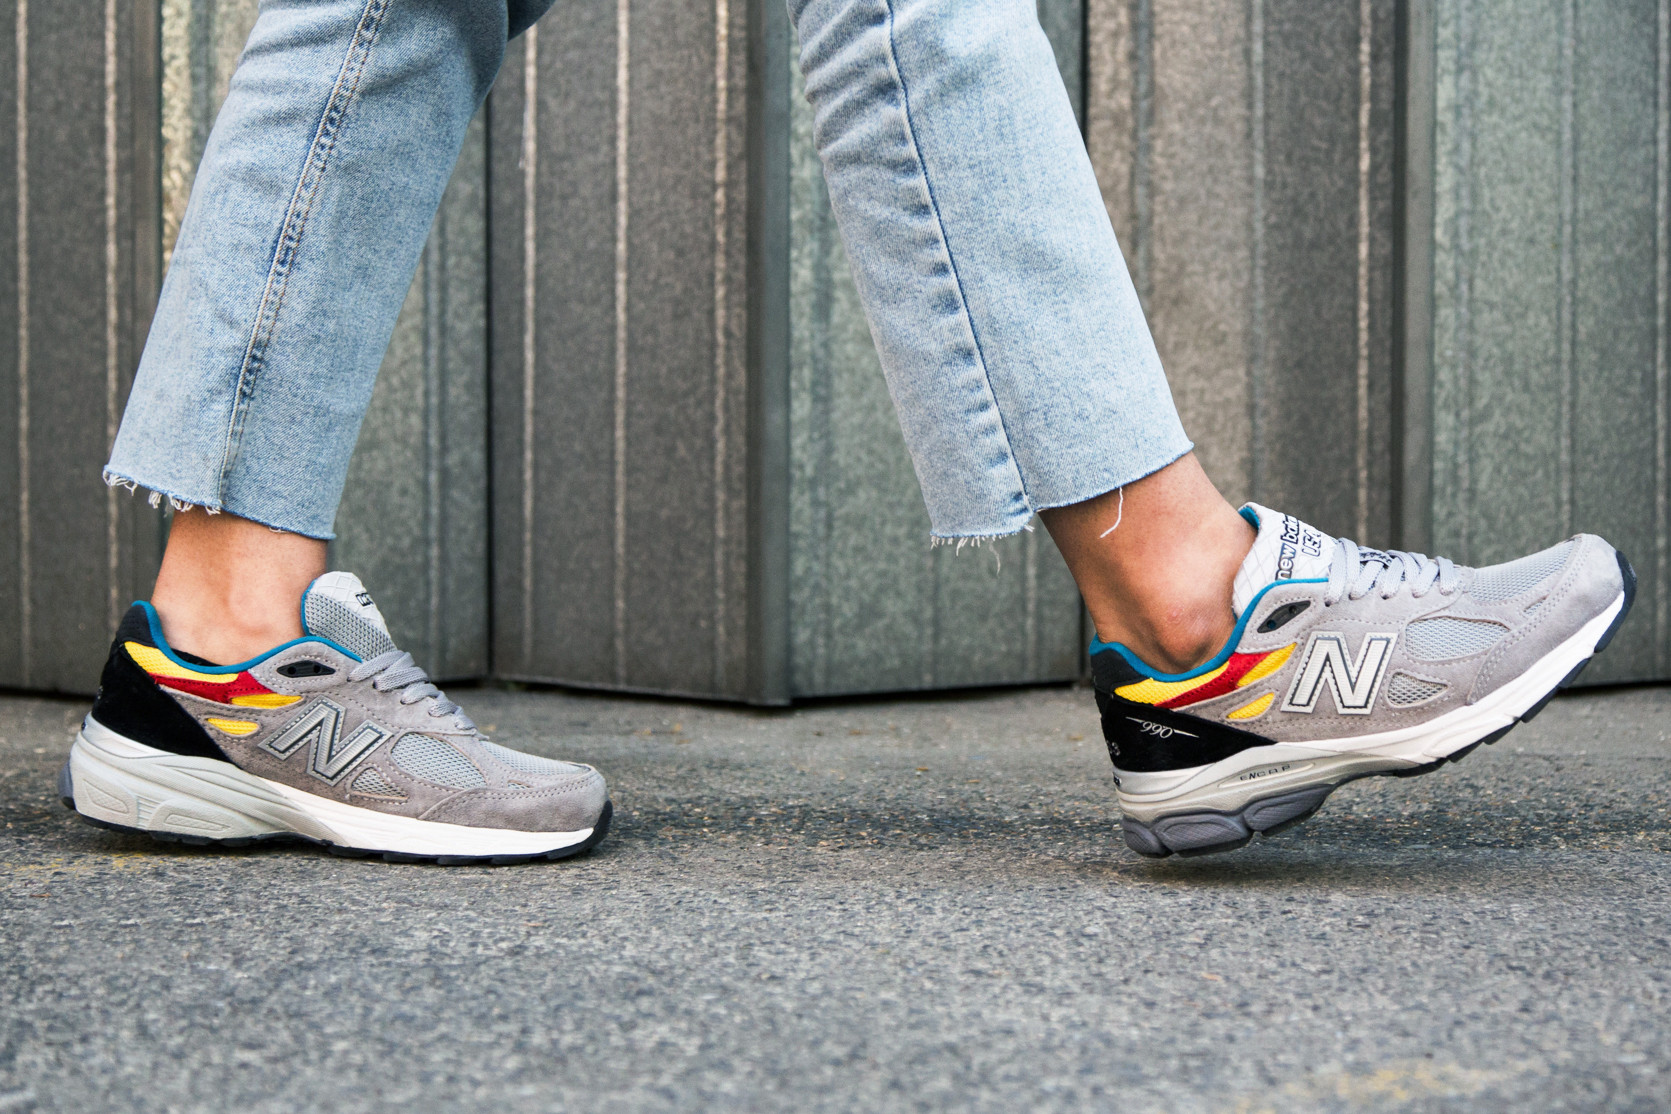 Aries x New Balance 990v3 Trainers On